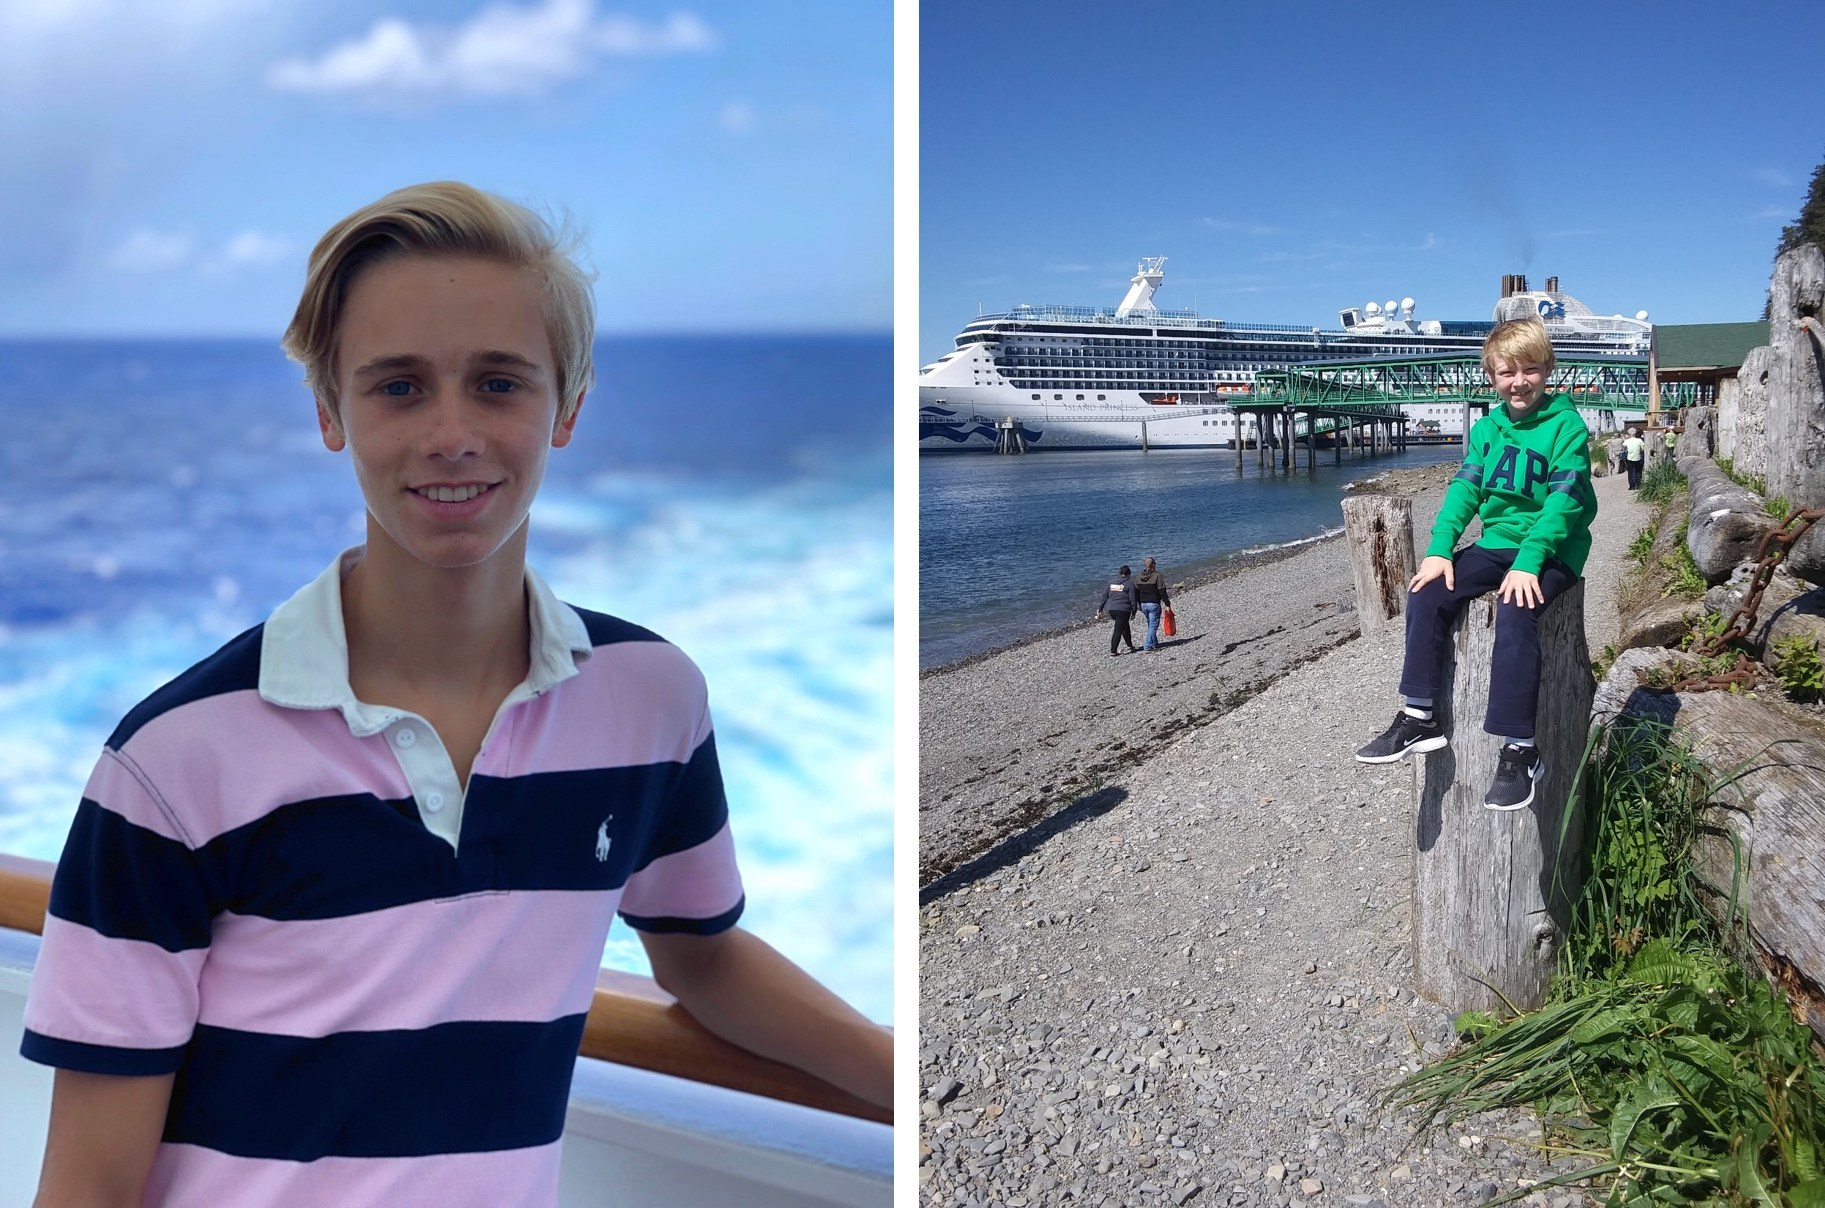 Meet Princess Cruises Most-Traveled Youth Guests Alexis Lavoie (left) and Wyatt Wilkinson (right)